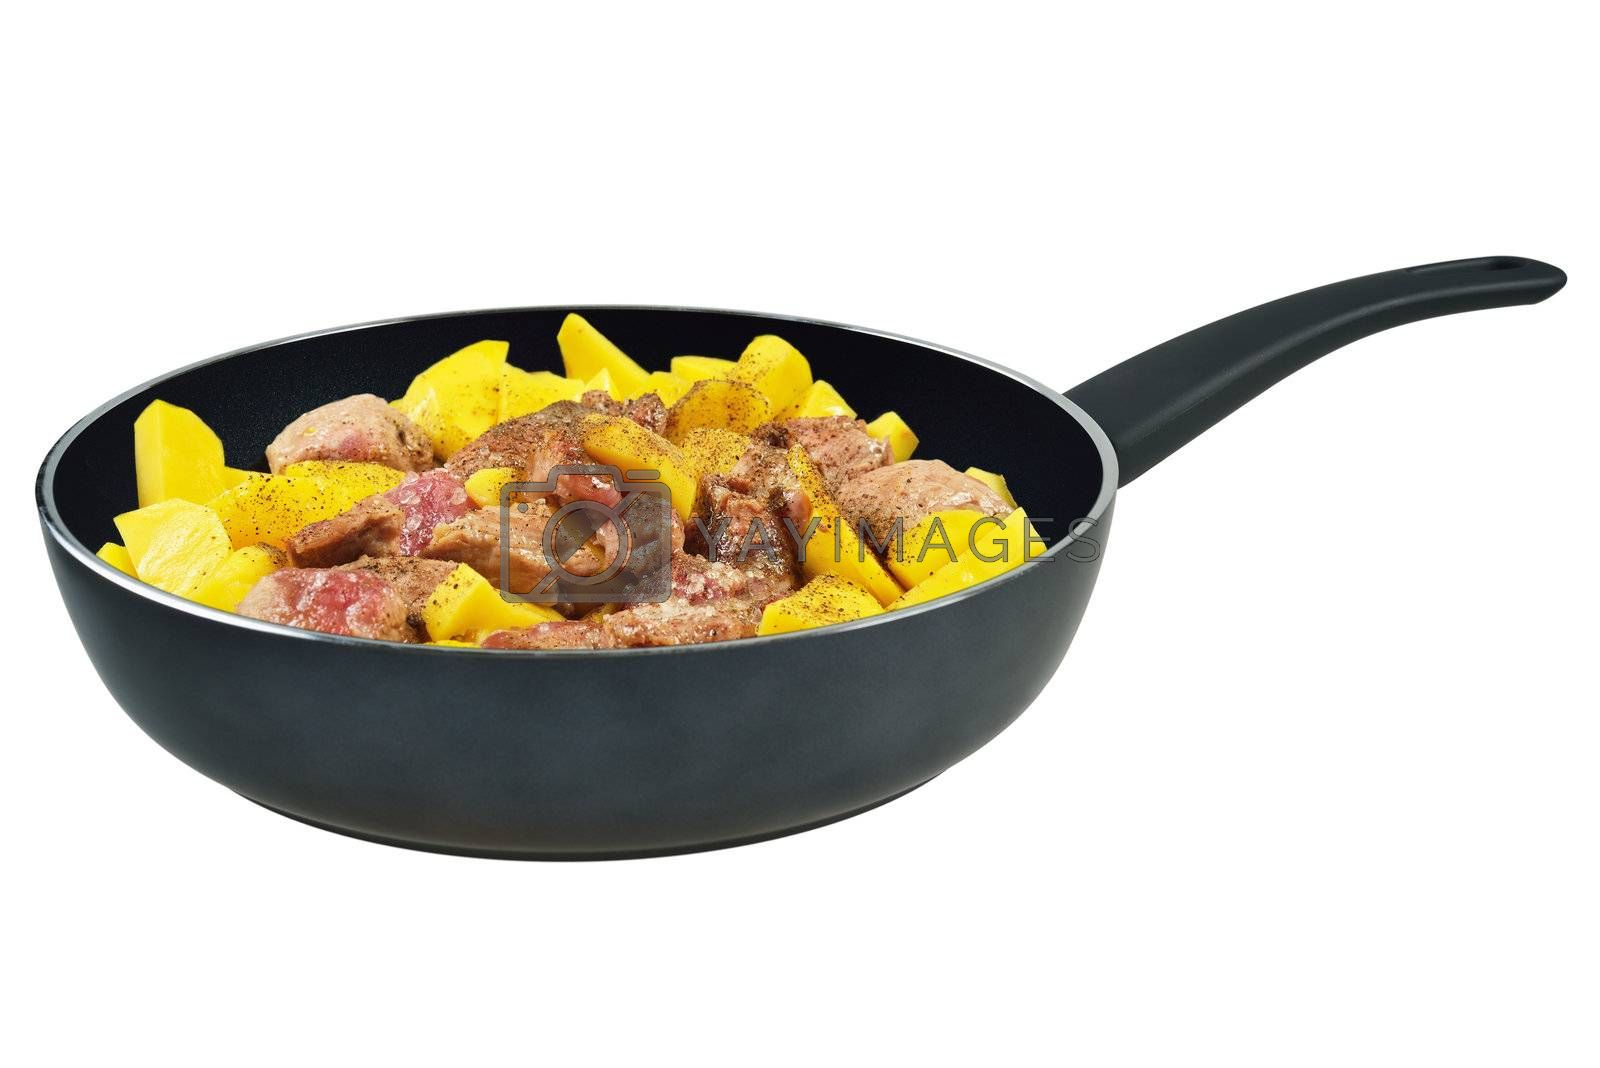 Pan with meat and potatoes. Isolated on white.